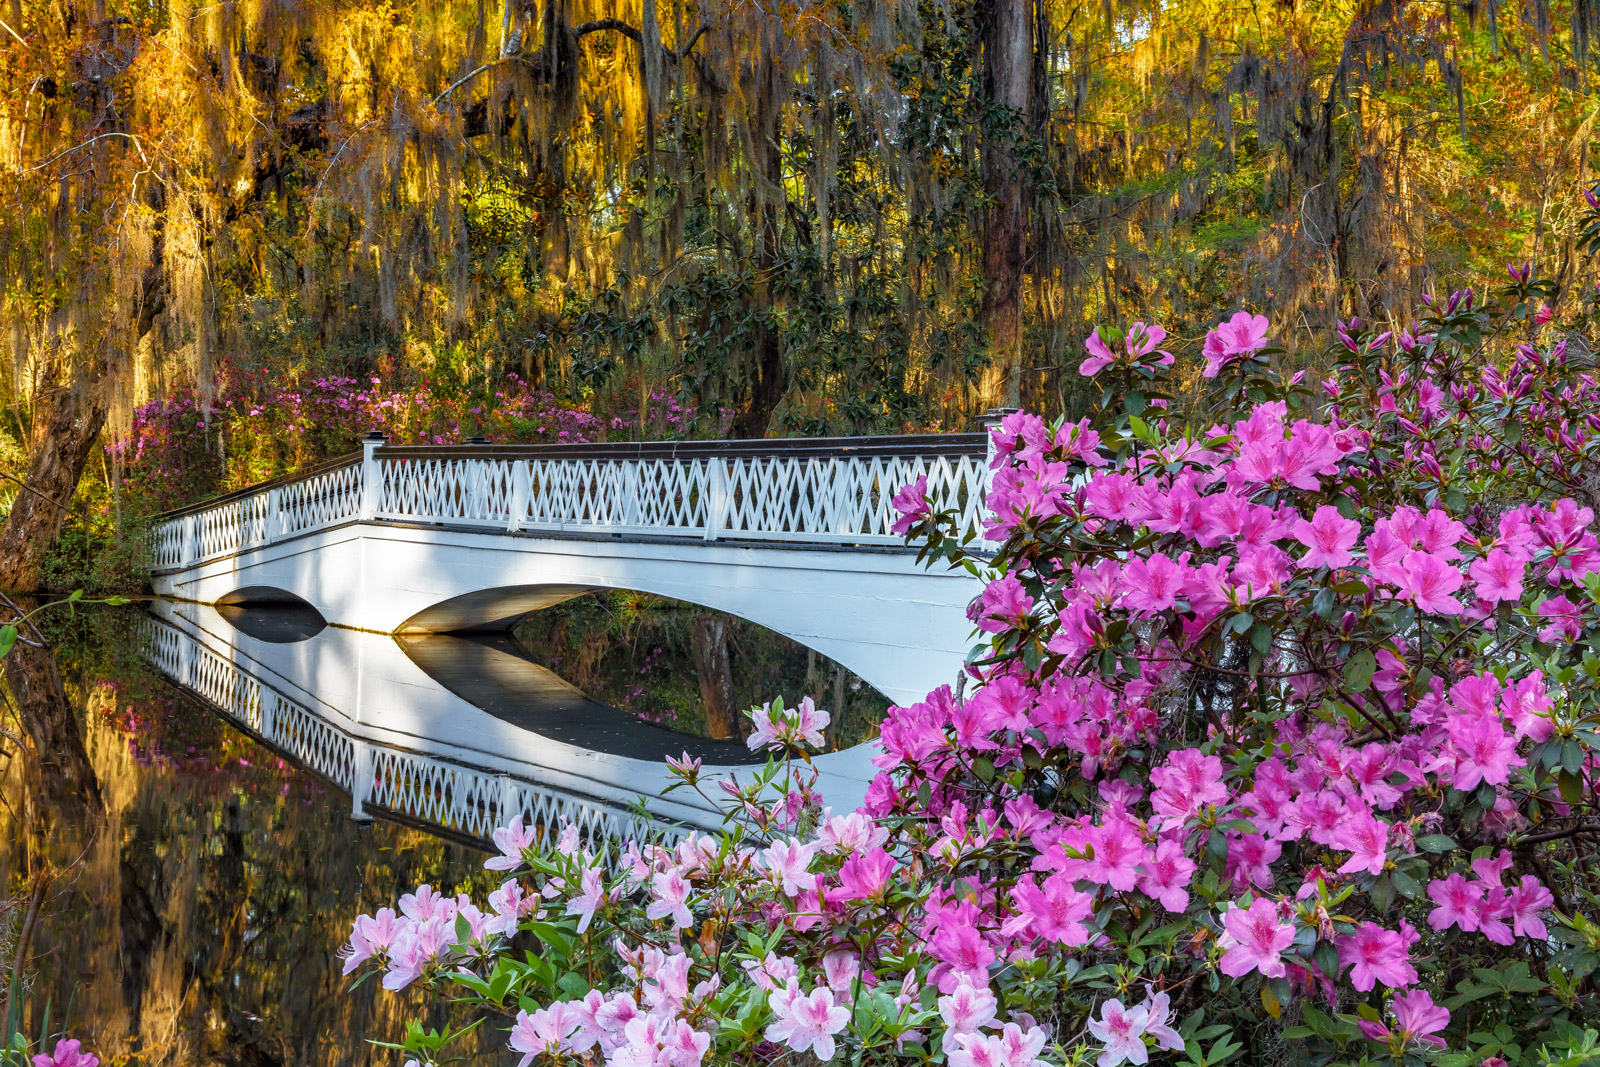 South Carolina, Magnolia Plantation, flowers, spring, reflection